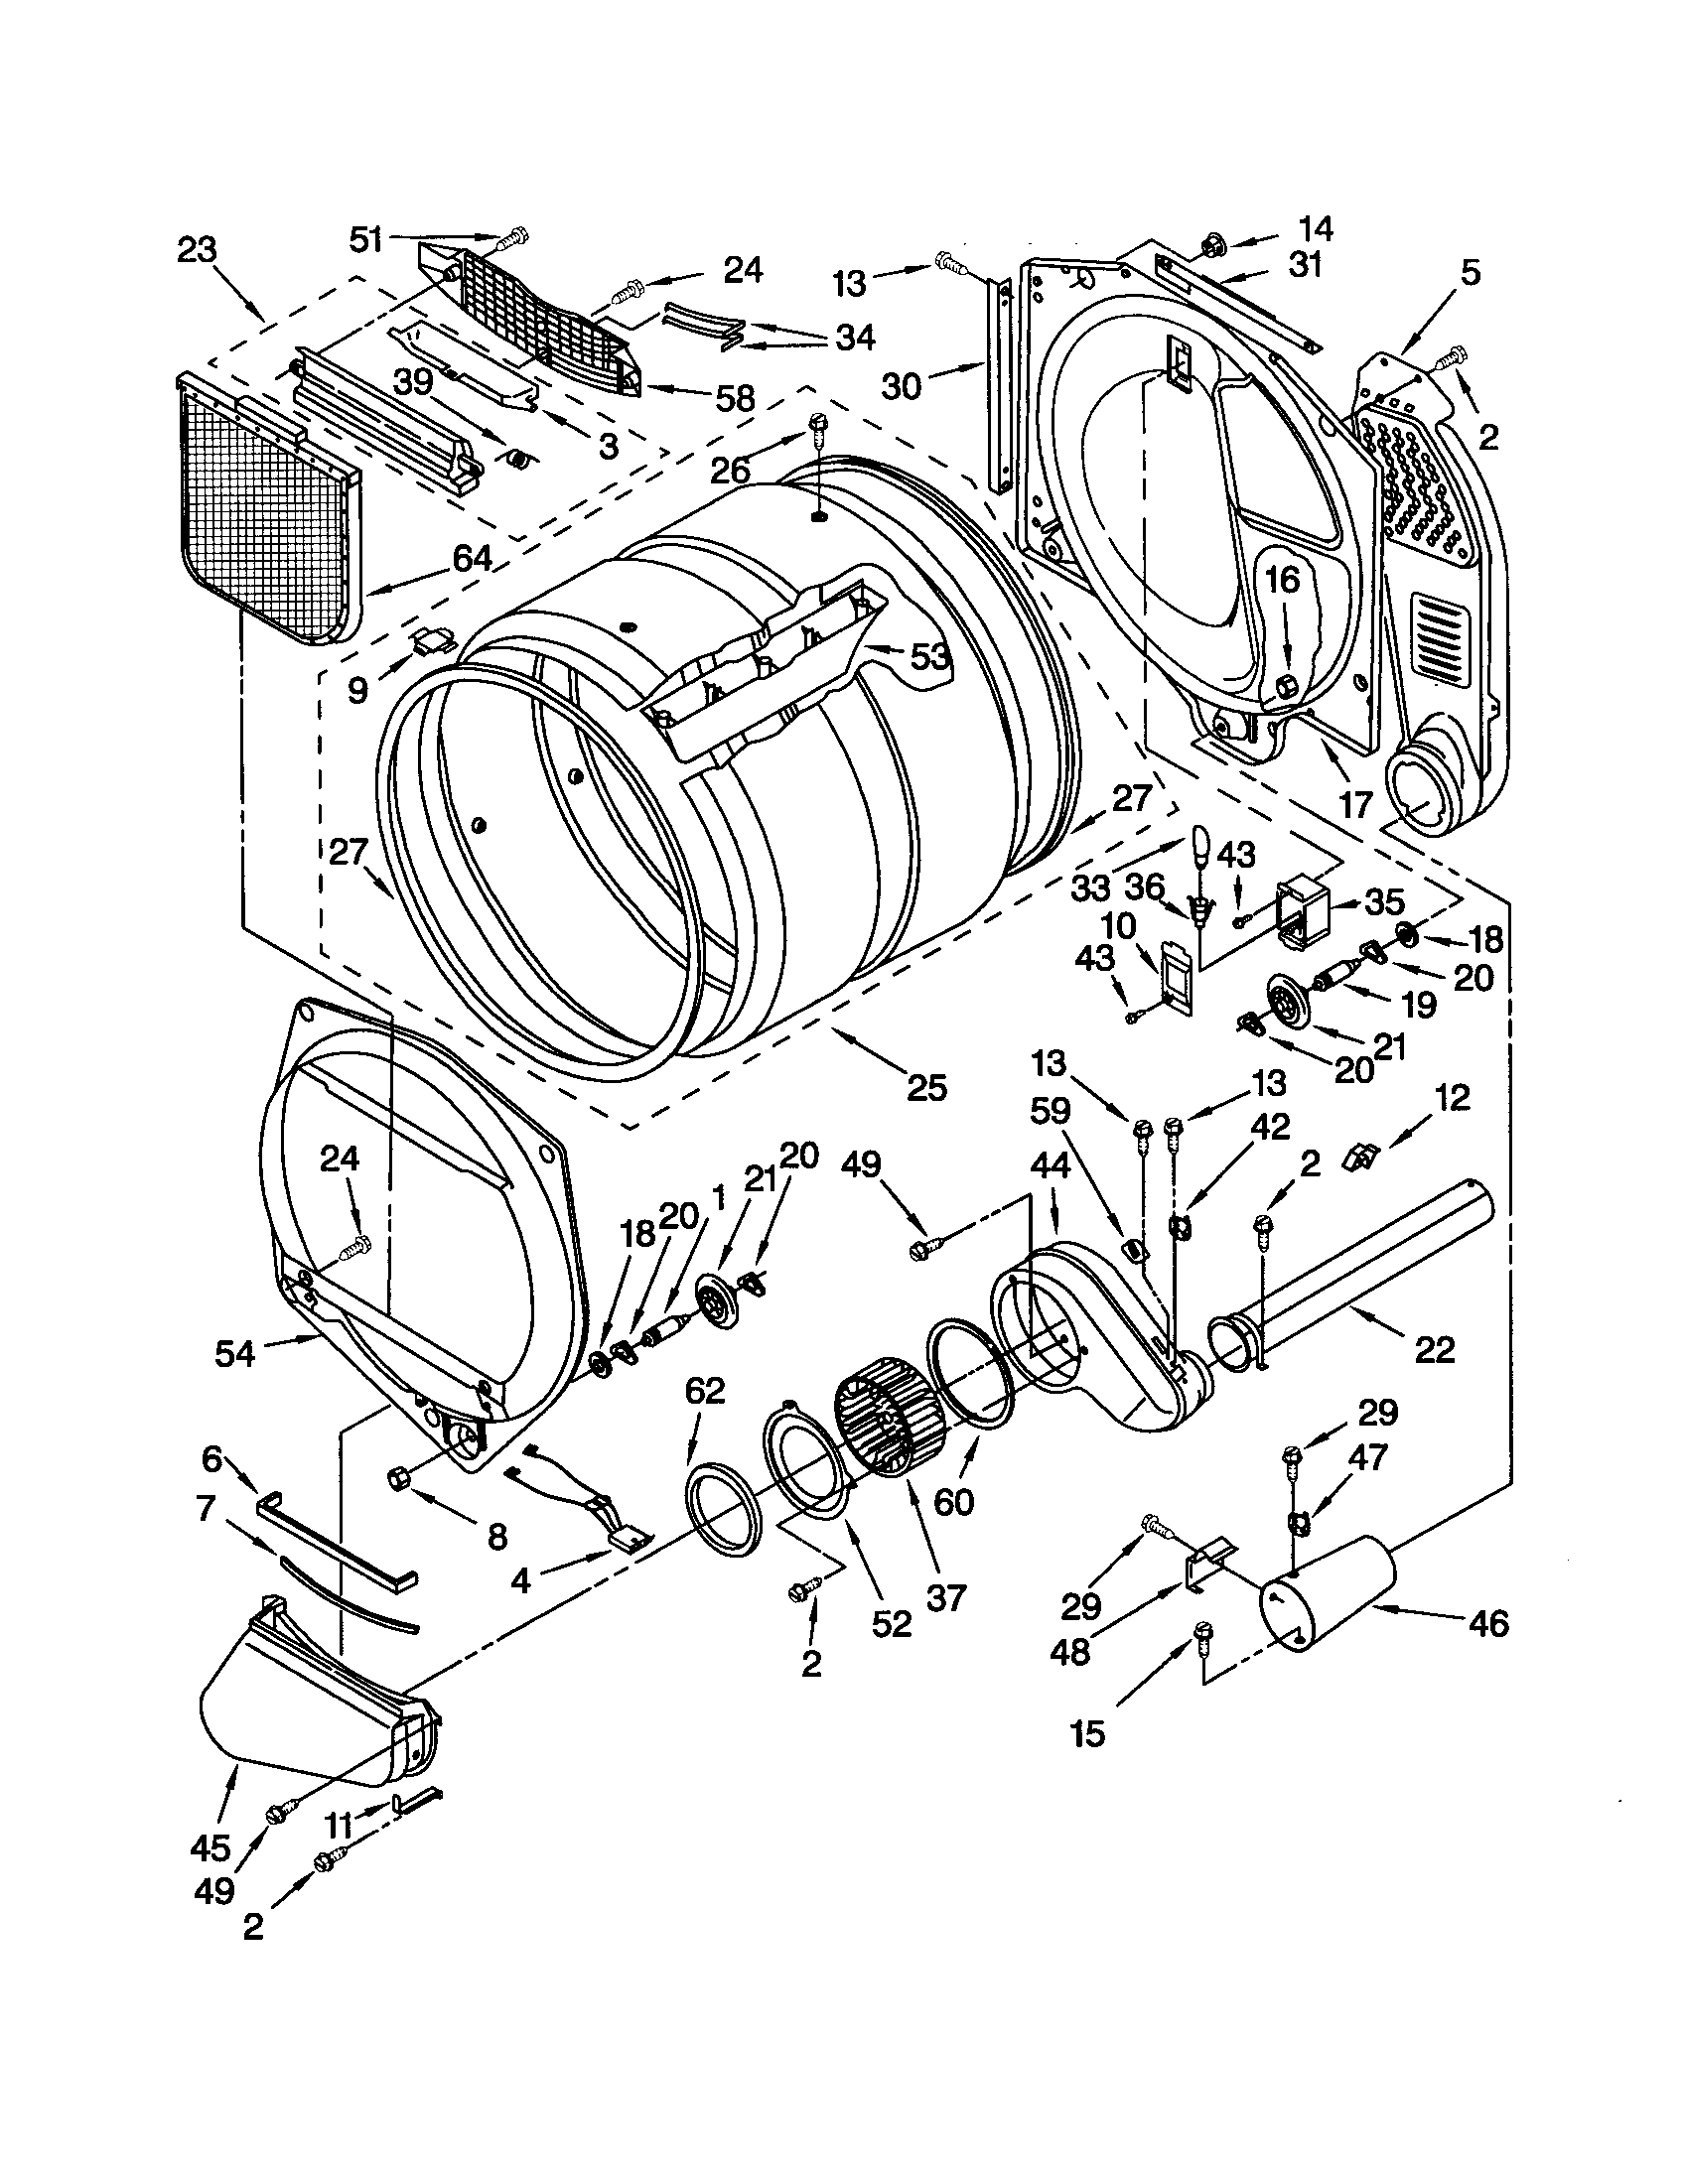 kenmore dryer wiring diagram 220 data diagram schematic kenmore dryer wiring diagram 220 [ 1696 x 2200 Pixel ]